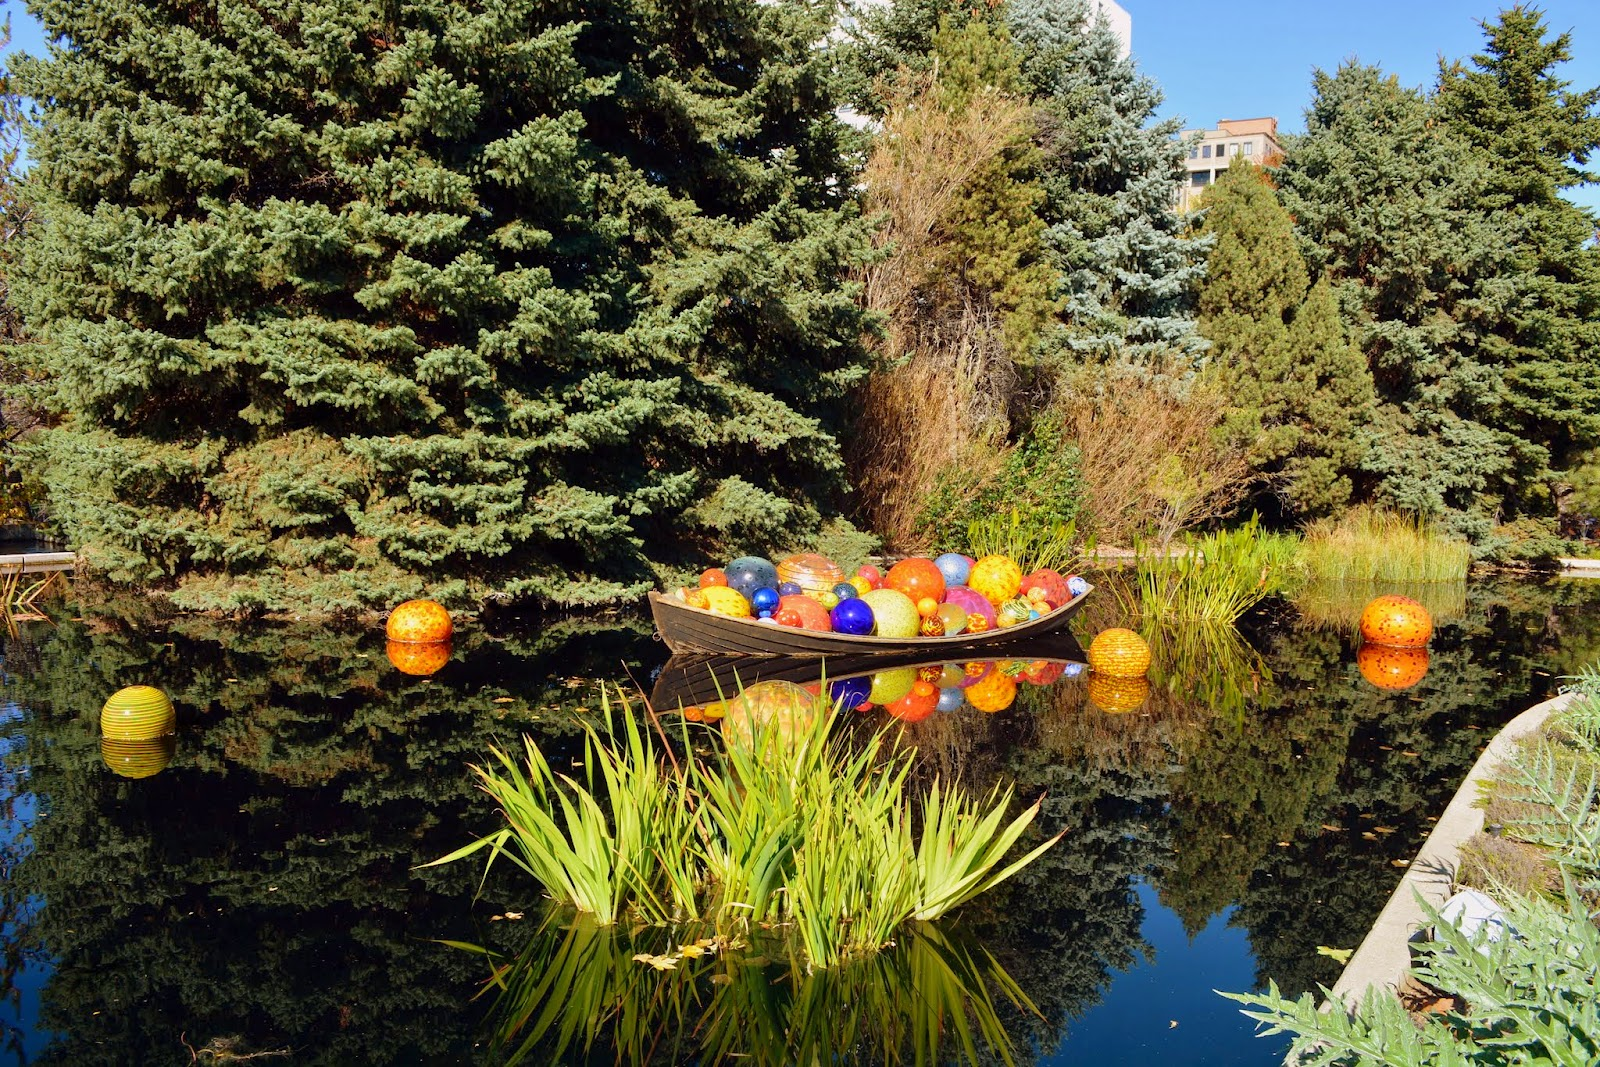 Mille Fiori Favoriti: Chihuly Exhibit at the Denver Botanic Garden